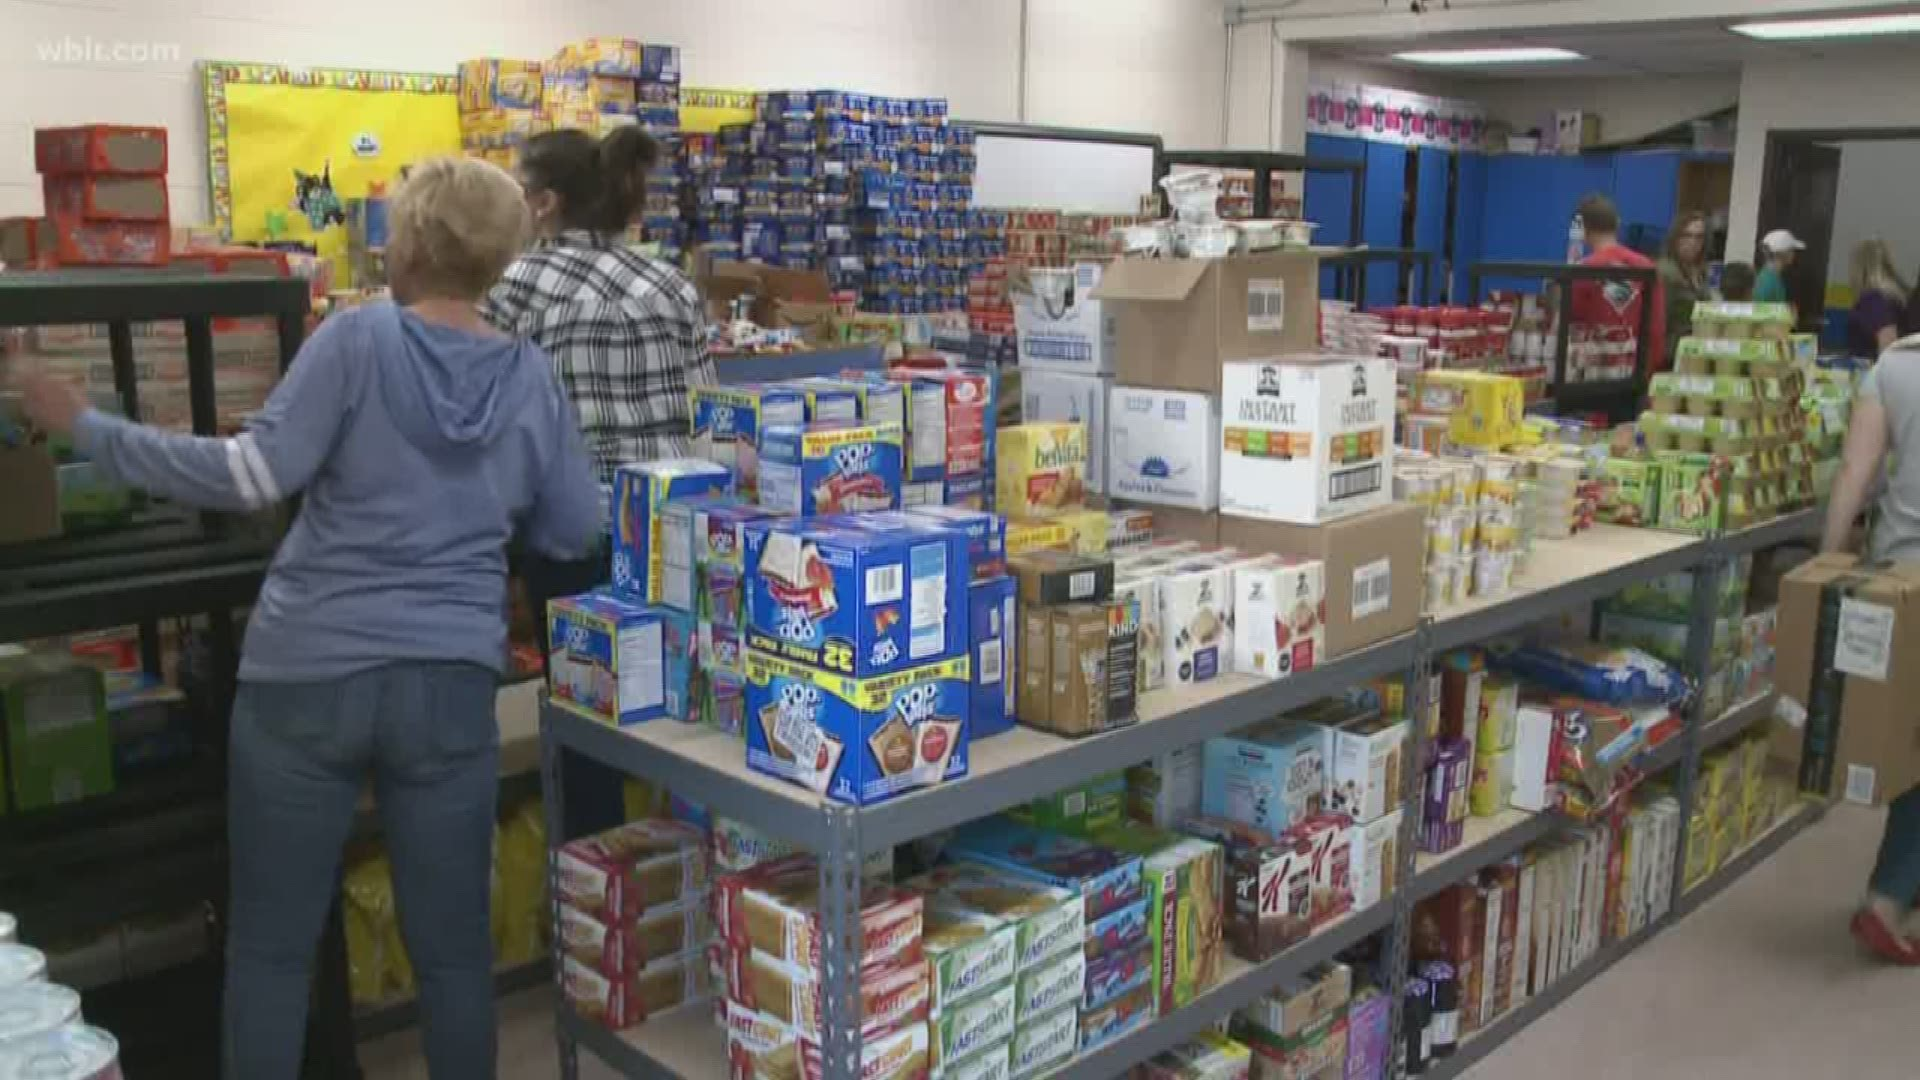 J Lo And A Rod Donate 365 Days Worth Of Food To Jacksboro